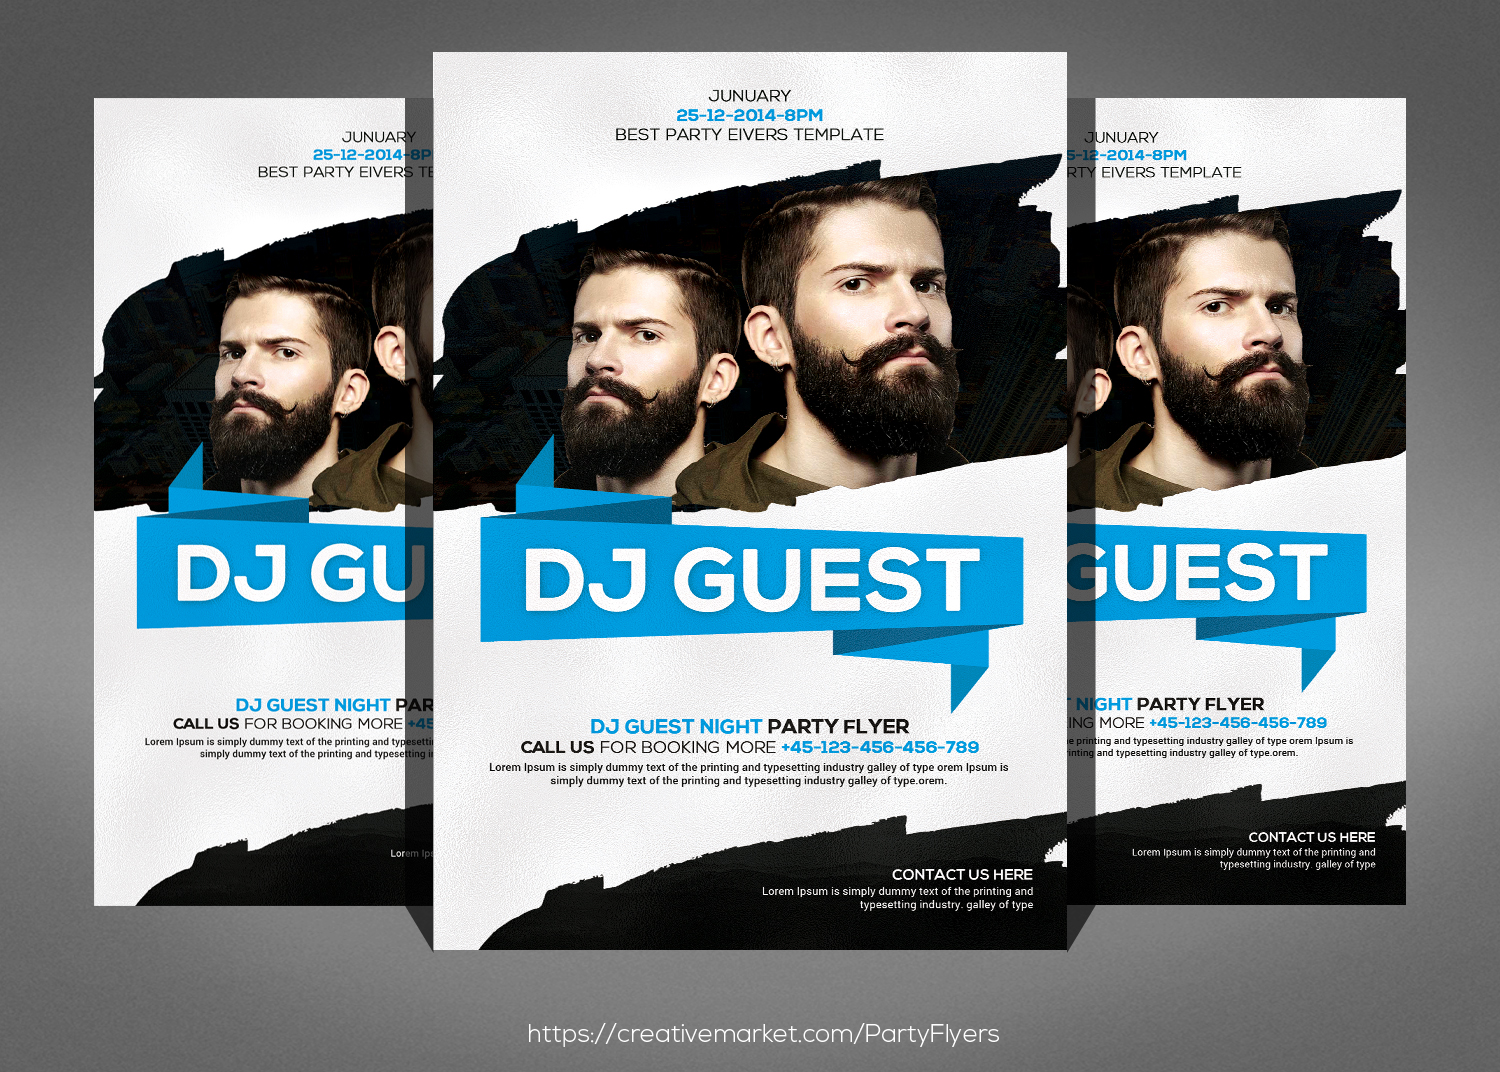 Template: 14+ Mind Blowing Dj Flyer Templates -PSD Download Now!